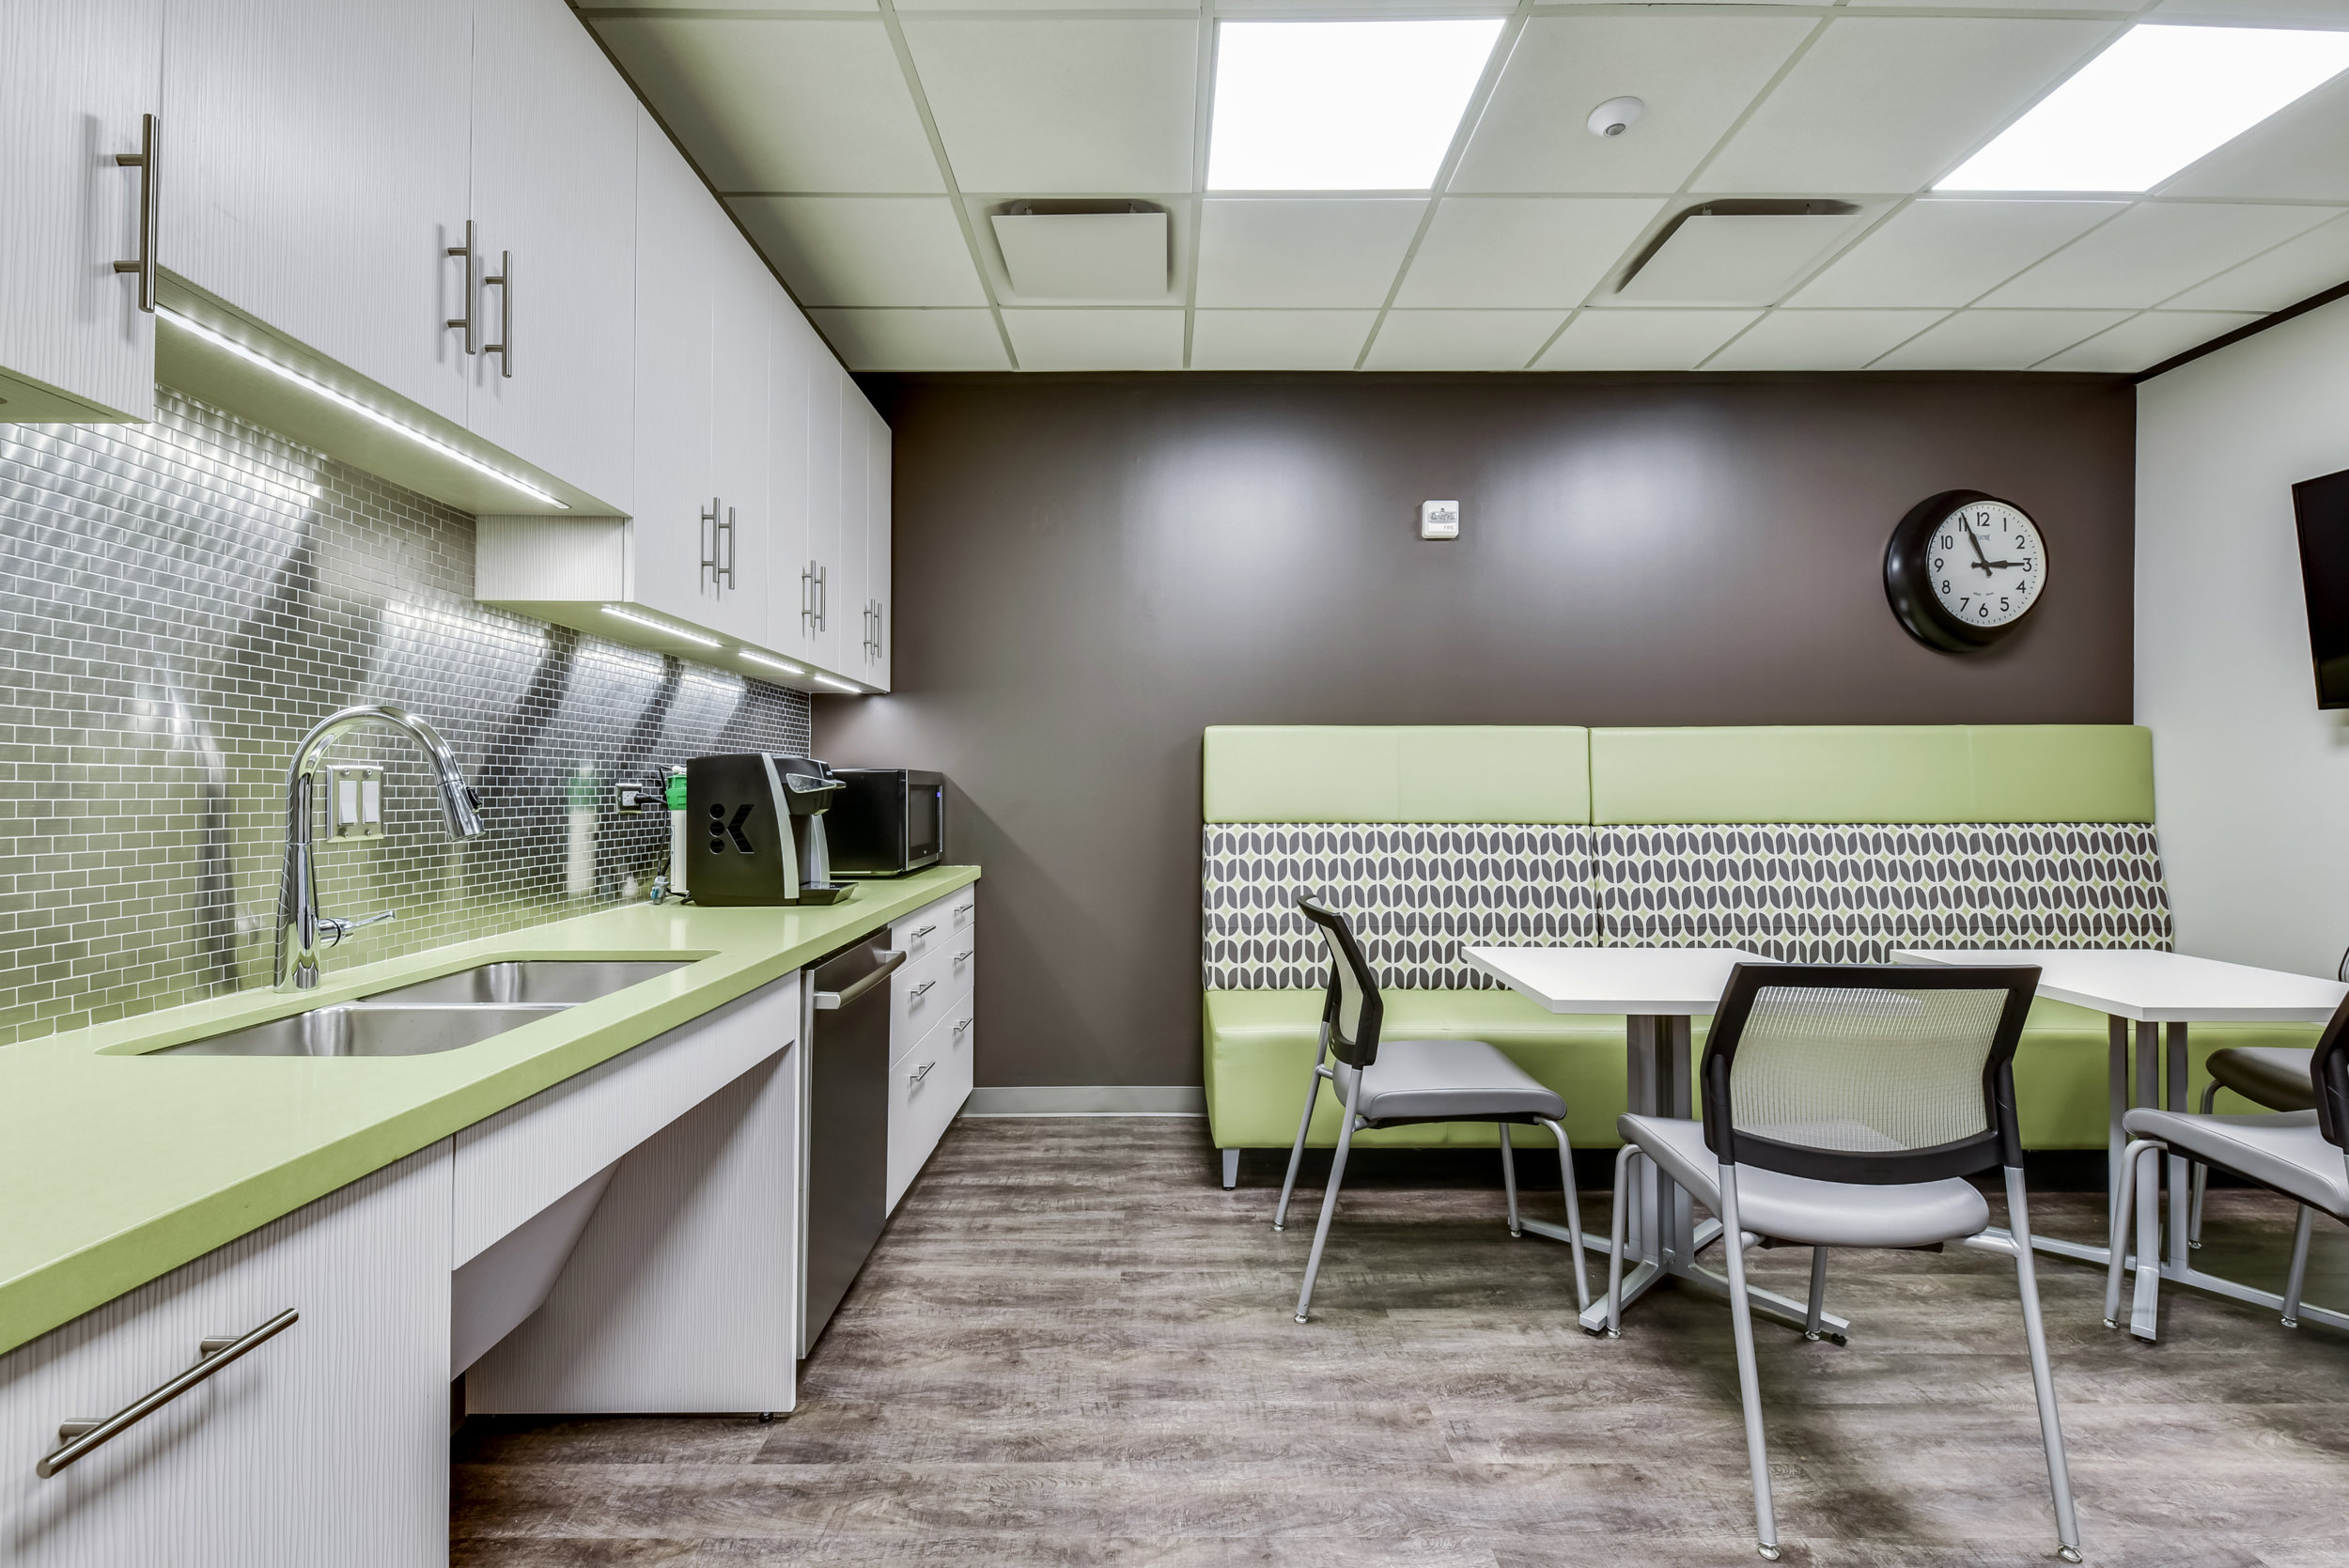 Commercial Office Kitchen Design Austin